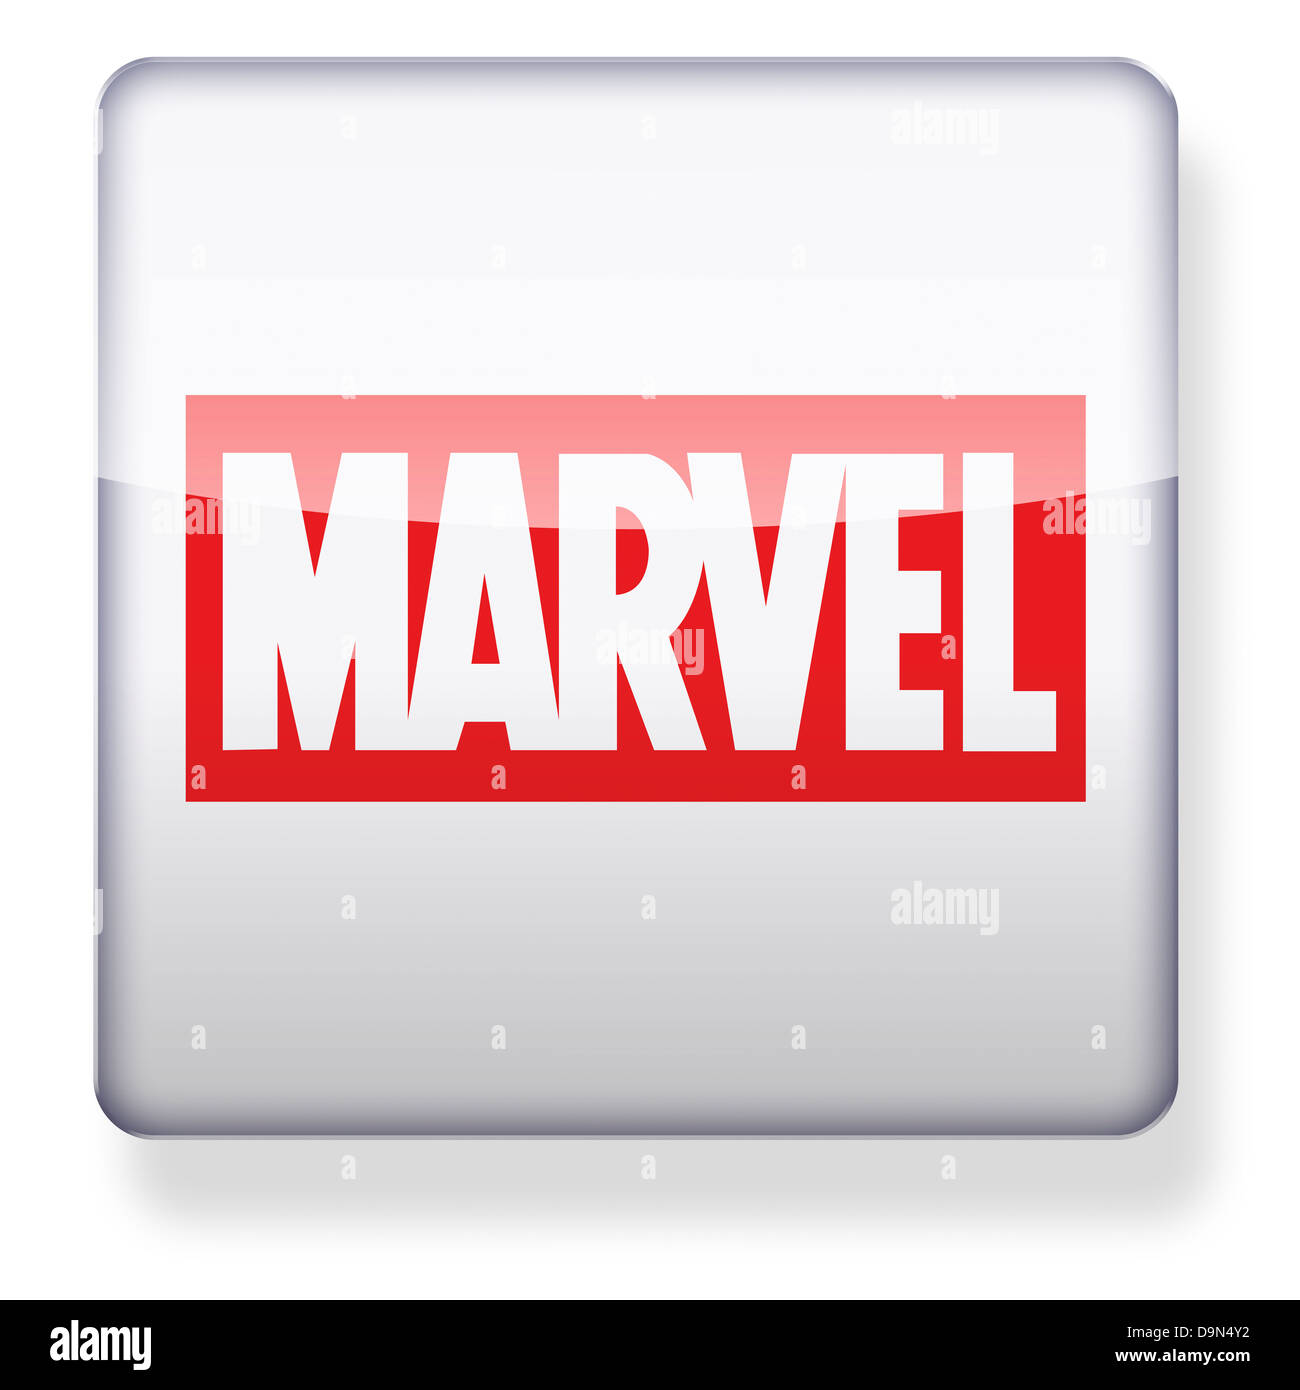 Marvel comics logo as an app icon. Clipping path included. - Stock Image